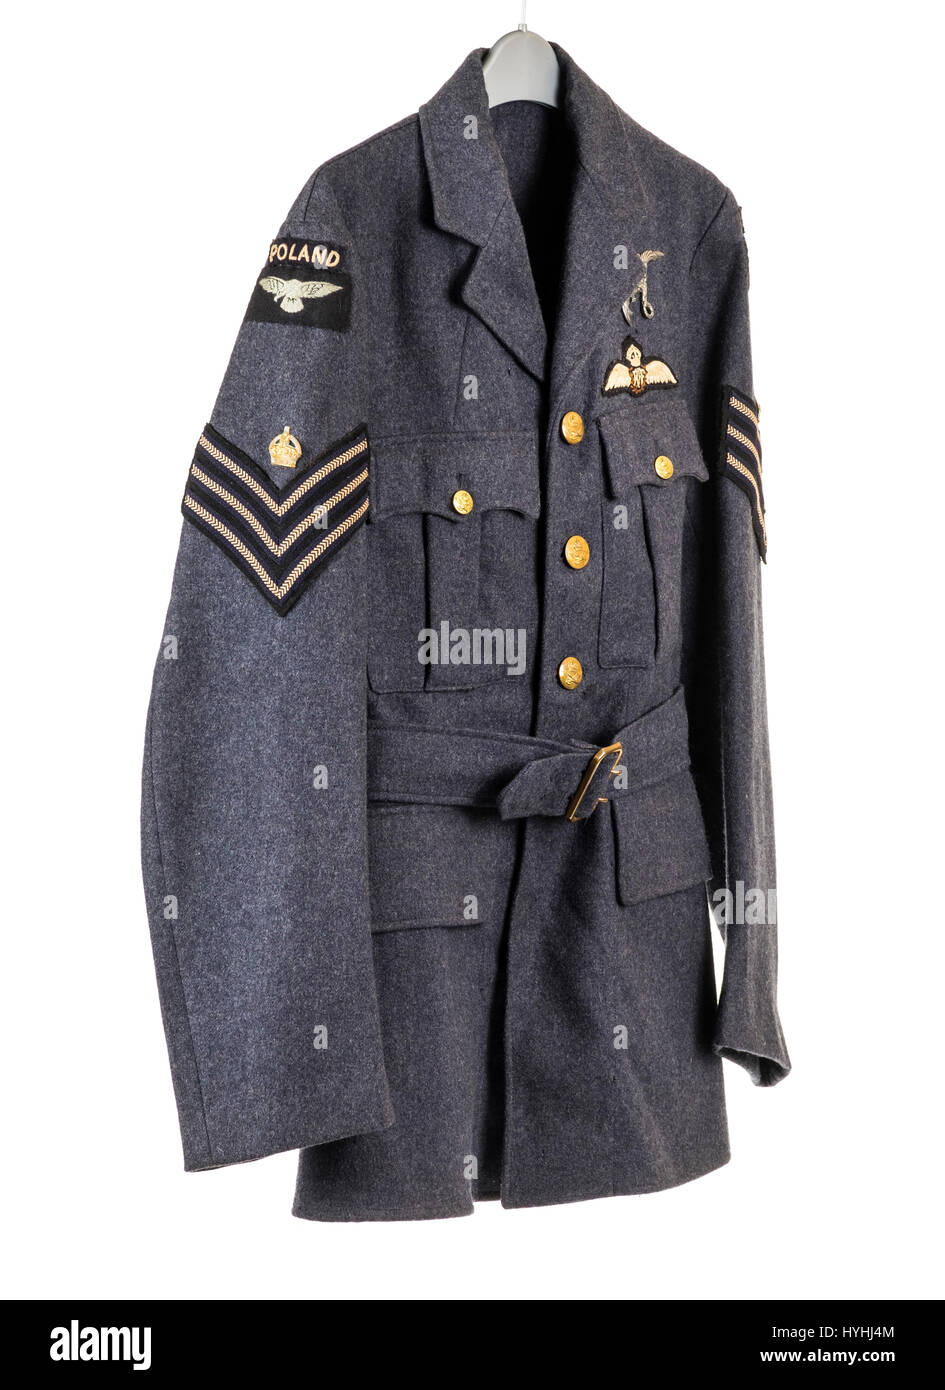 WW2 RAF tunic worn by a Sergeant with the Polish Air Force, with cloth RAF wings, Poland shoulder badges and stripes - Stock Image